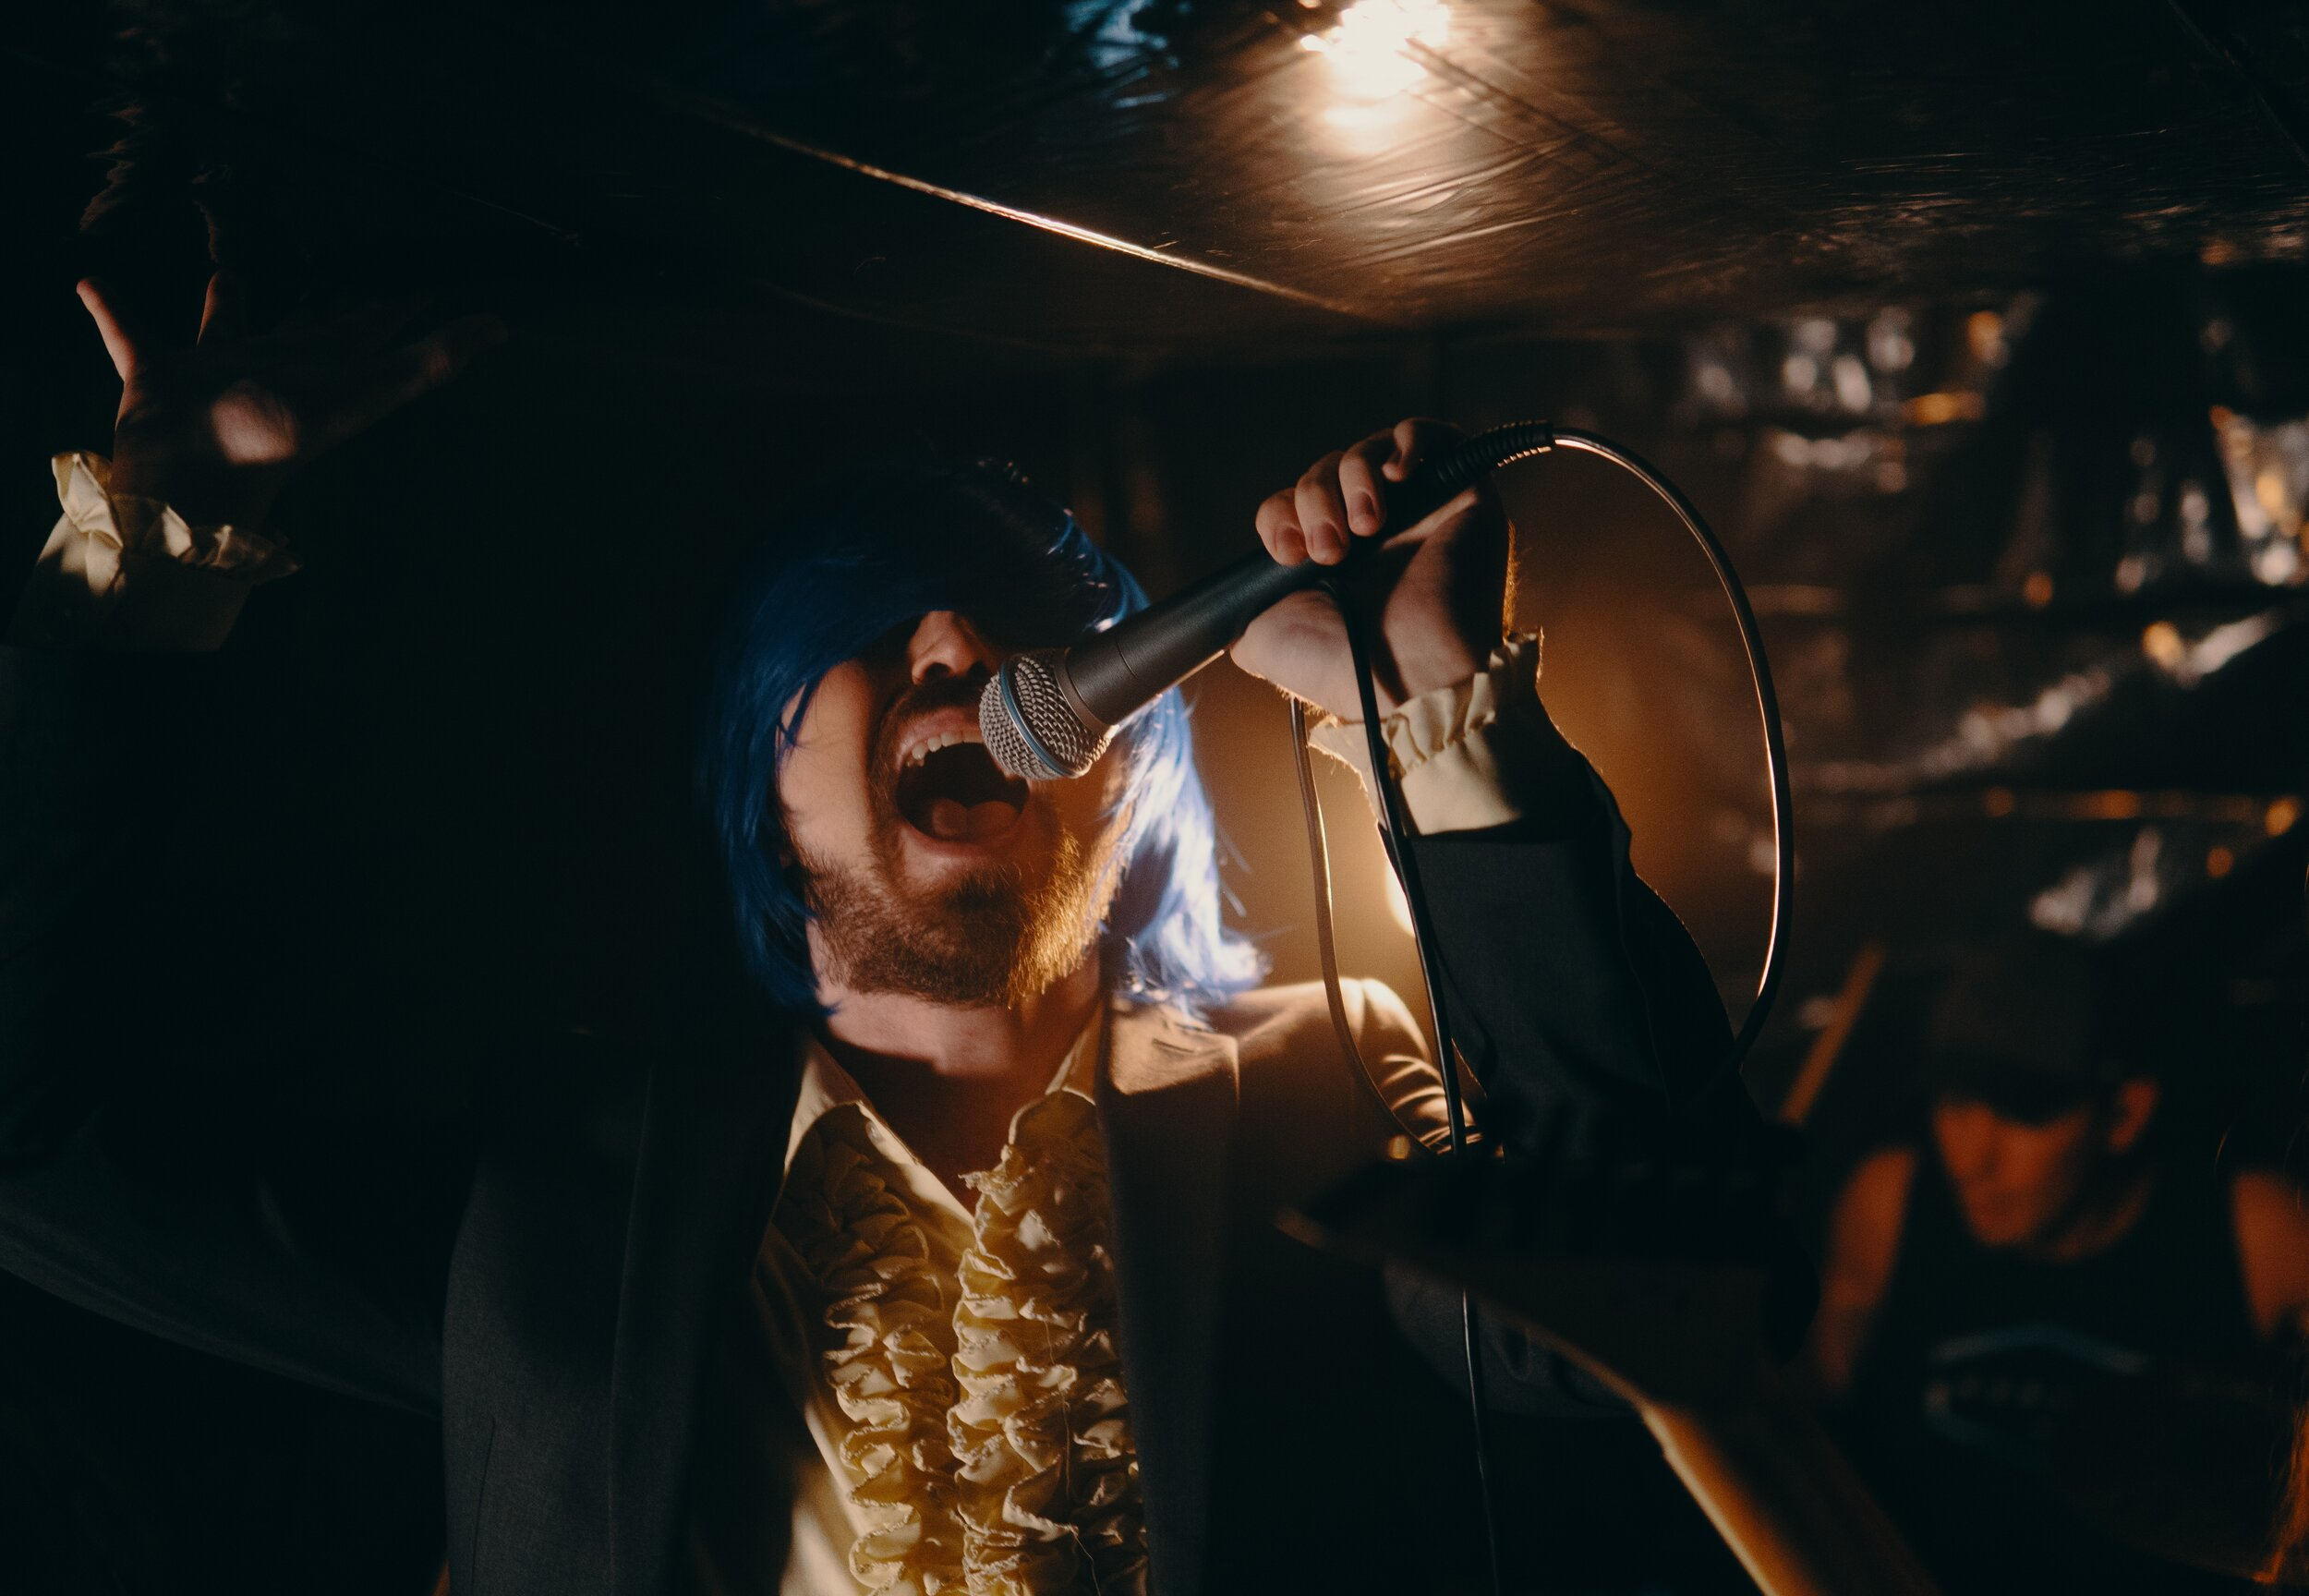 Lead singer Jon performing on the set of 'Lapis Lazuli.'